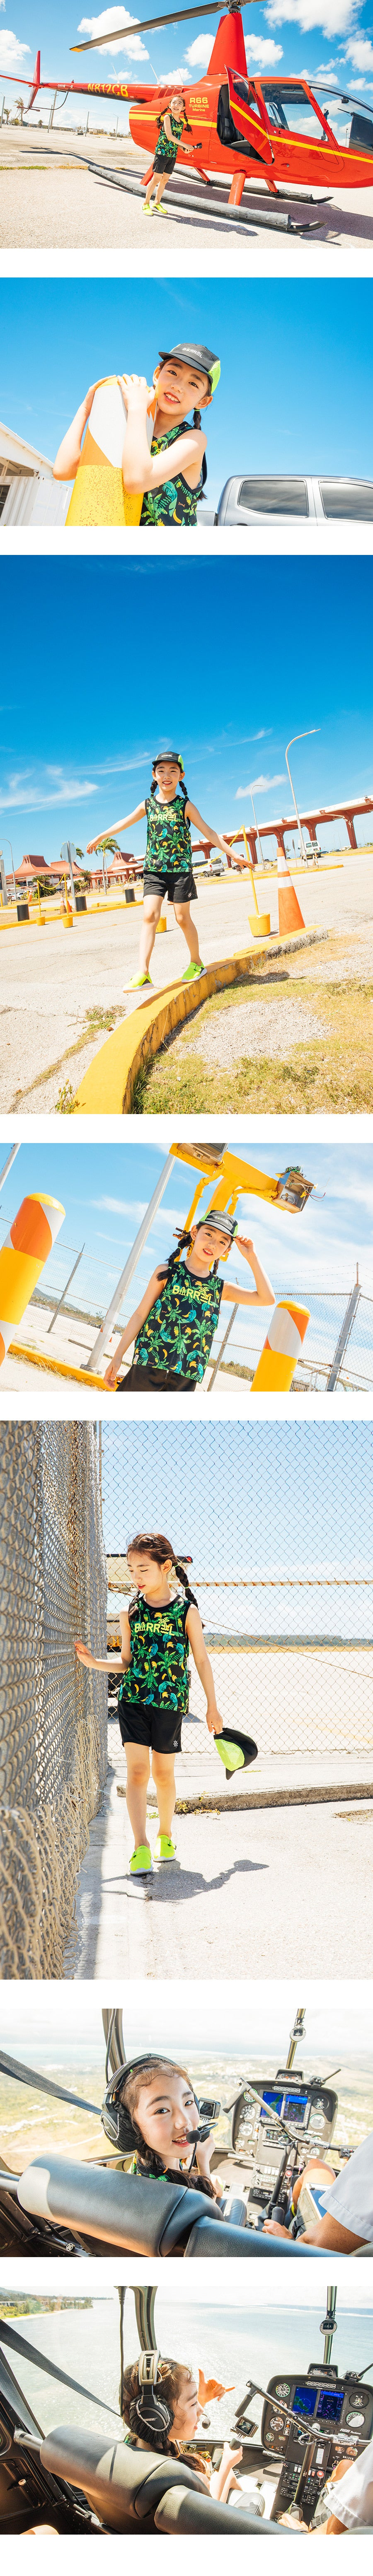 Barrel Kids Mesh Sleeveless-JUNGLE BANANA_image